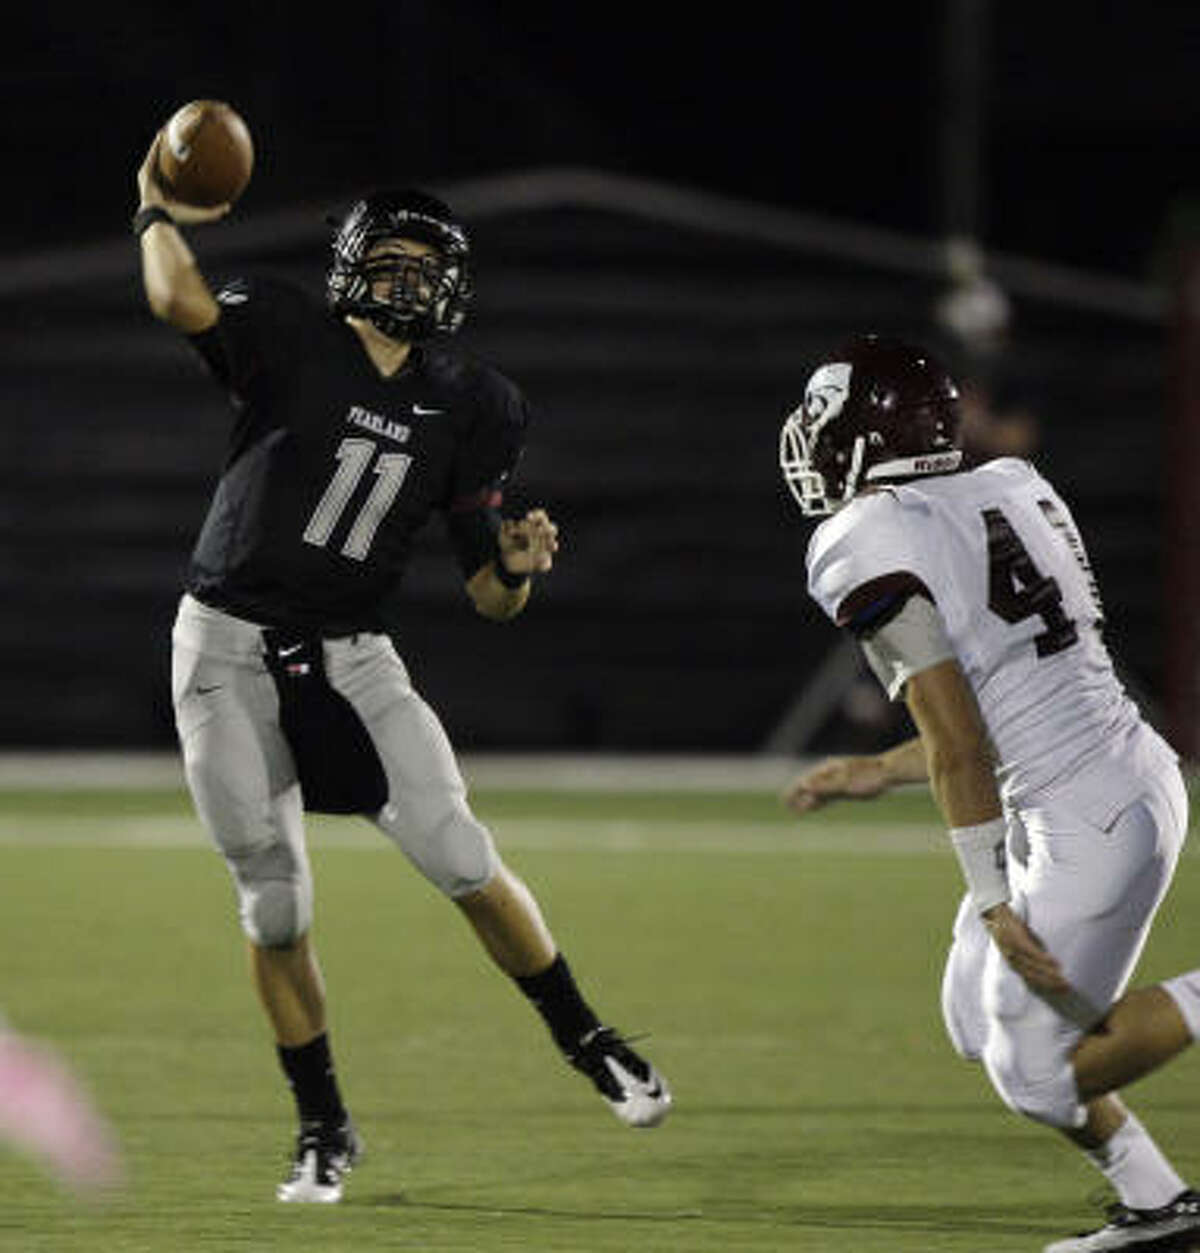 Pearland quarterback Trey Anderson fires a throw while under pressure from Clear Creek's John Payne during Friday's District 24-5A matchup at Pearland ISD Stadium.